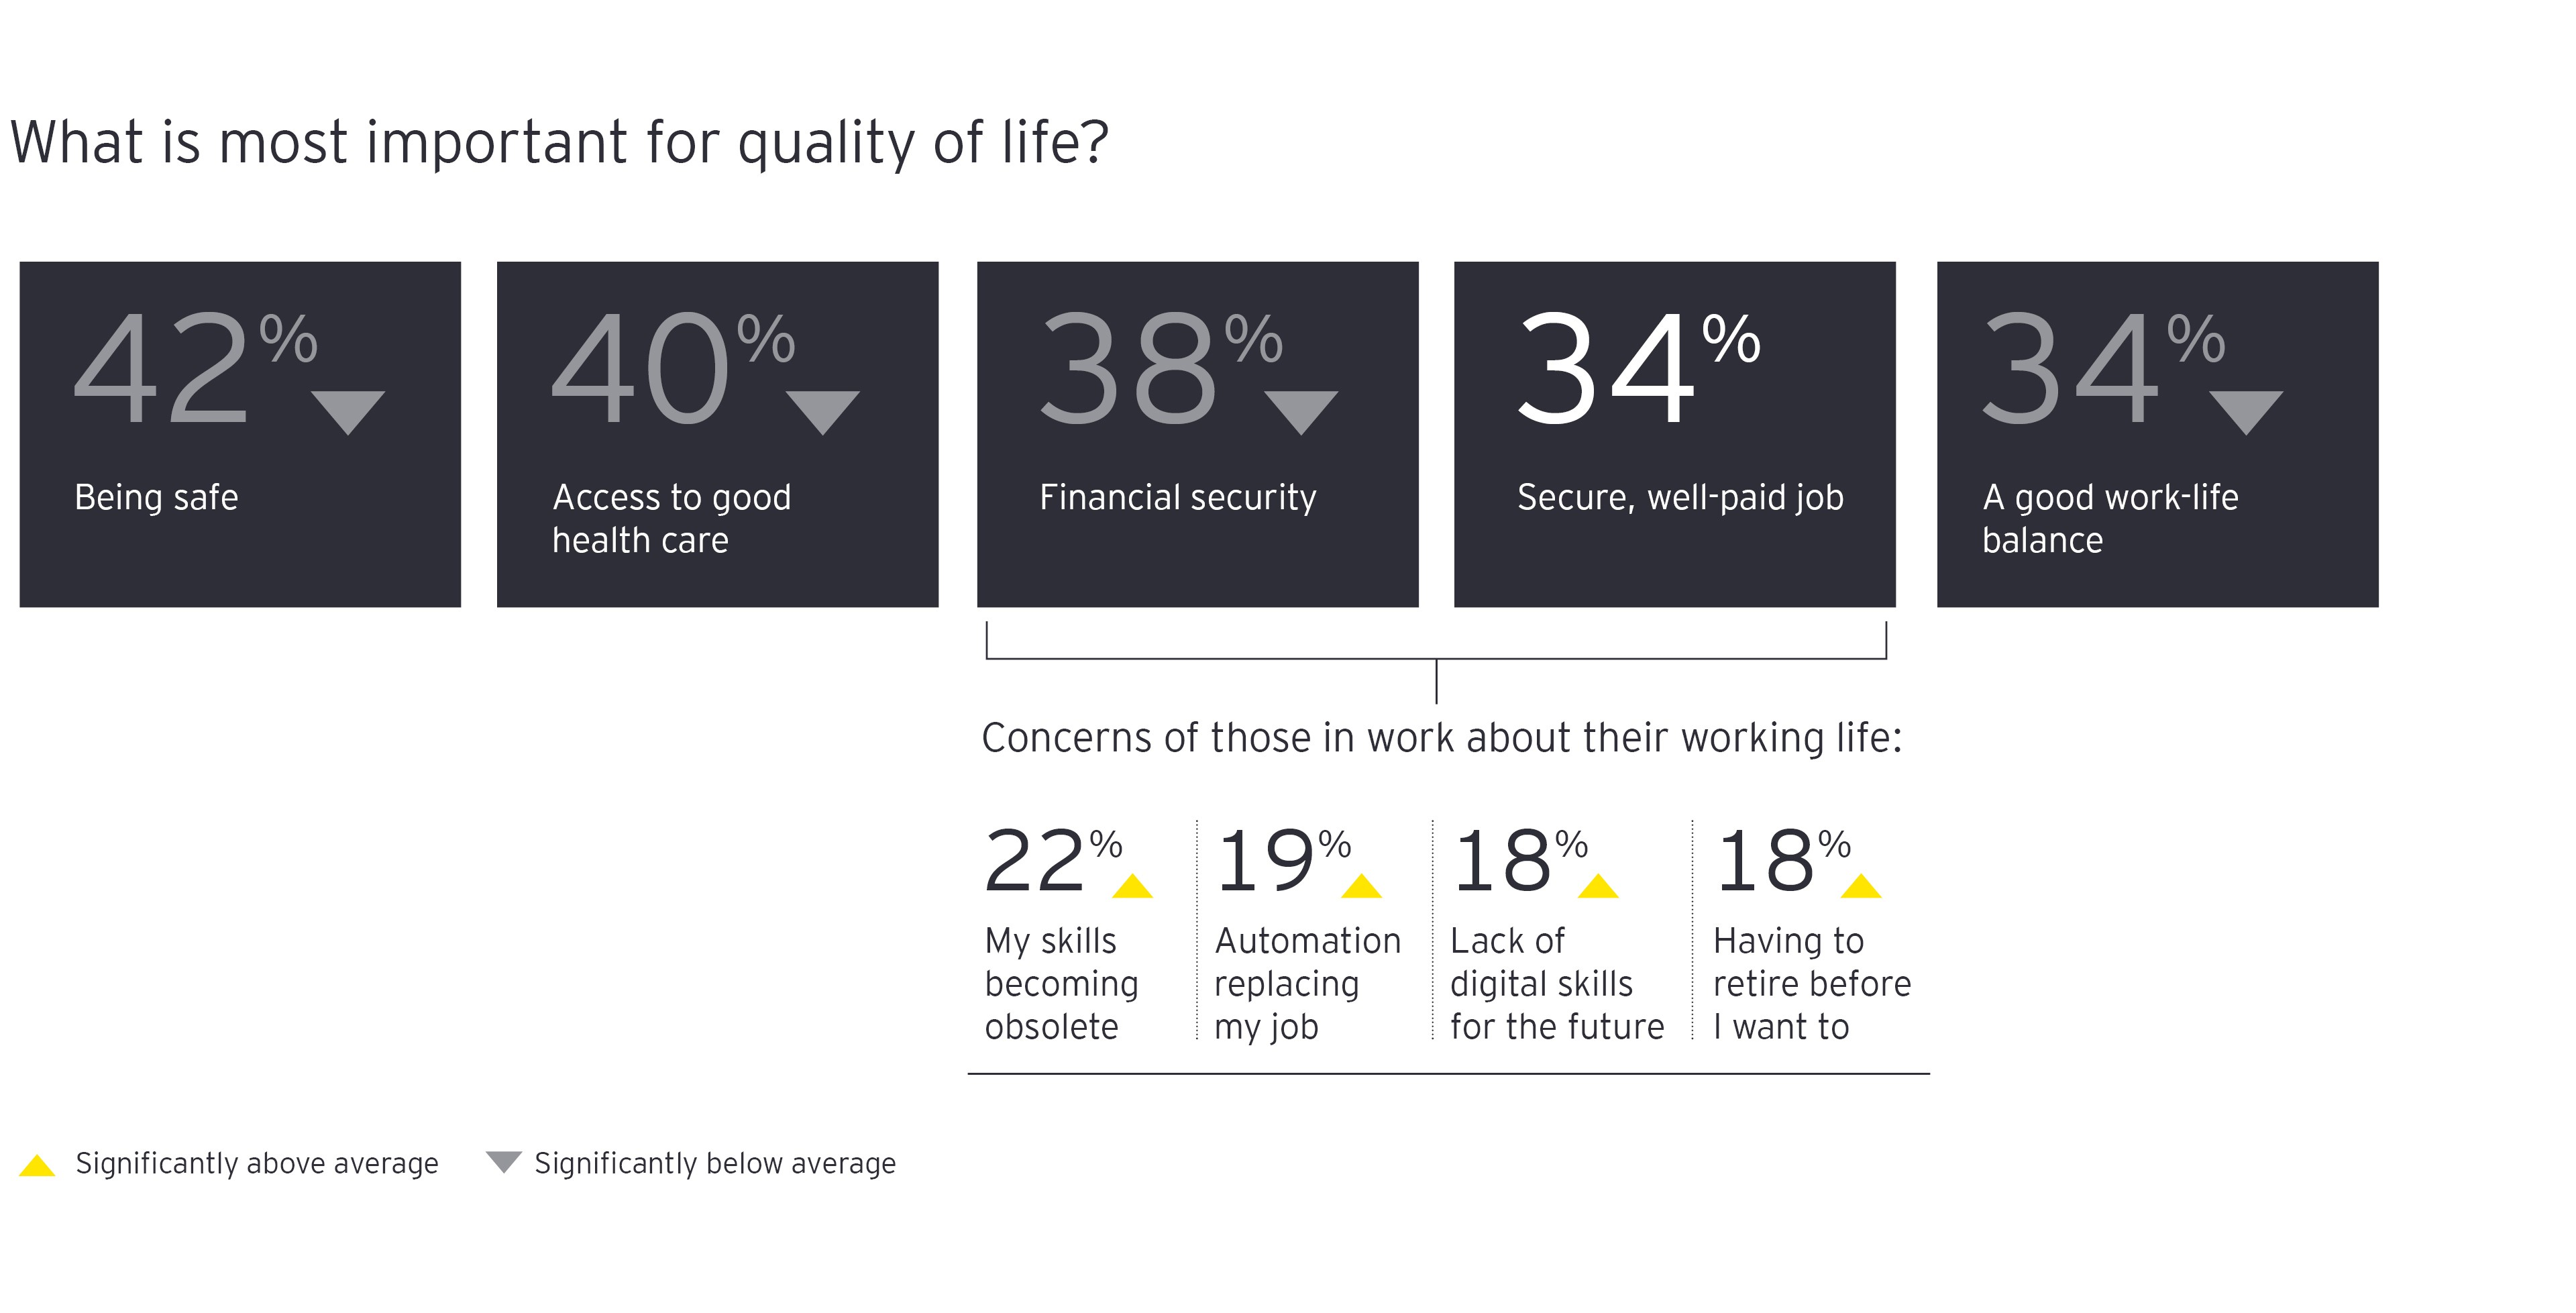 What is most important for quality of life chart